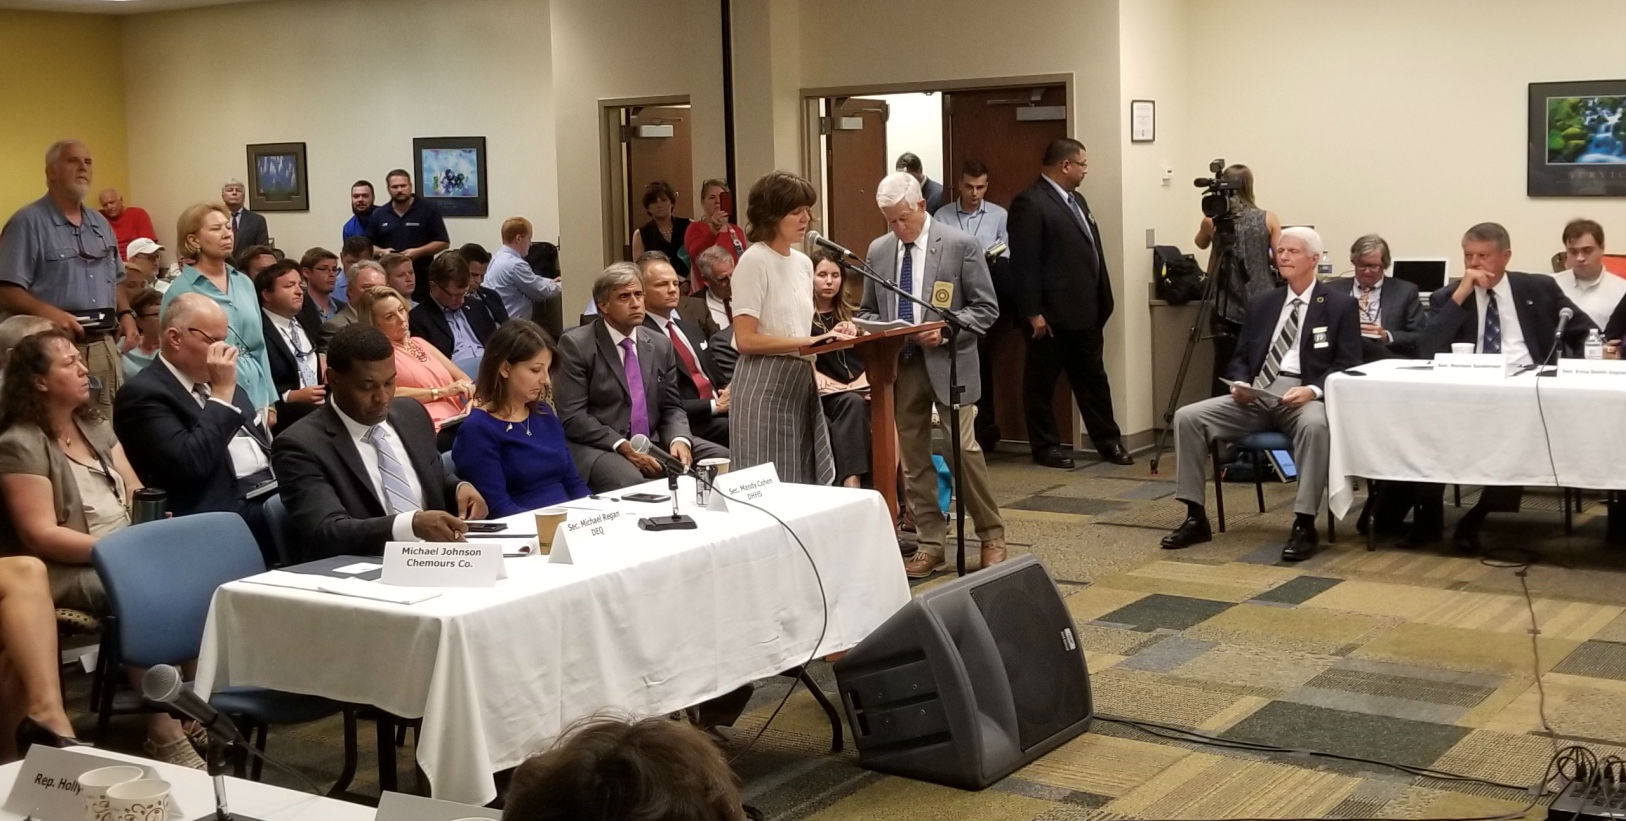 Dana Sargent Provides Public Comment at the Environmental Review Commission Meeting, Wilmington, August 23, 2017